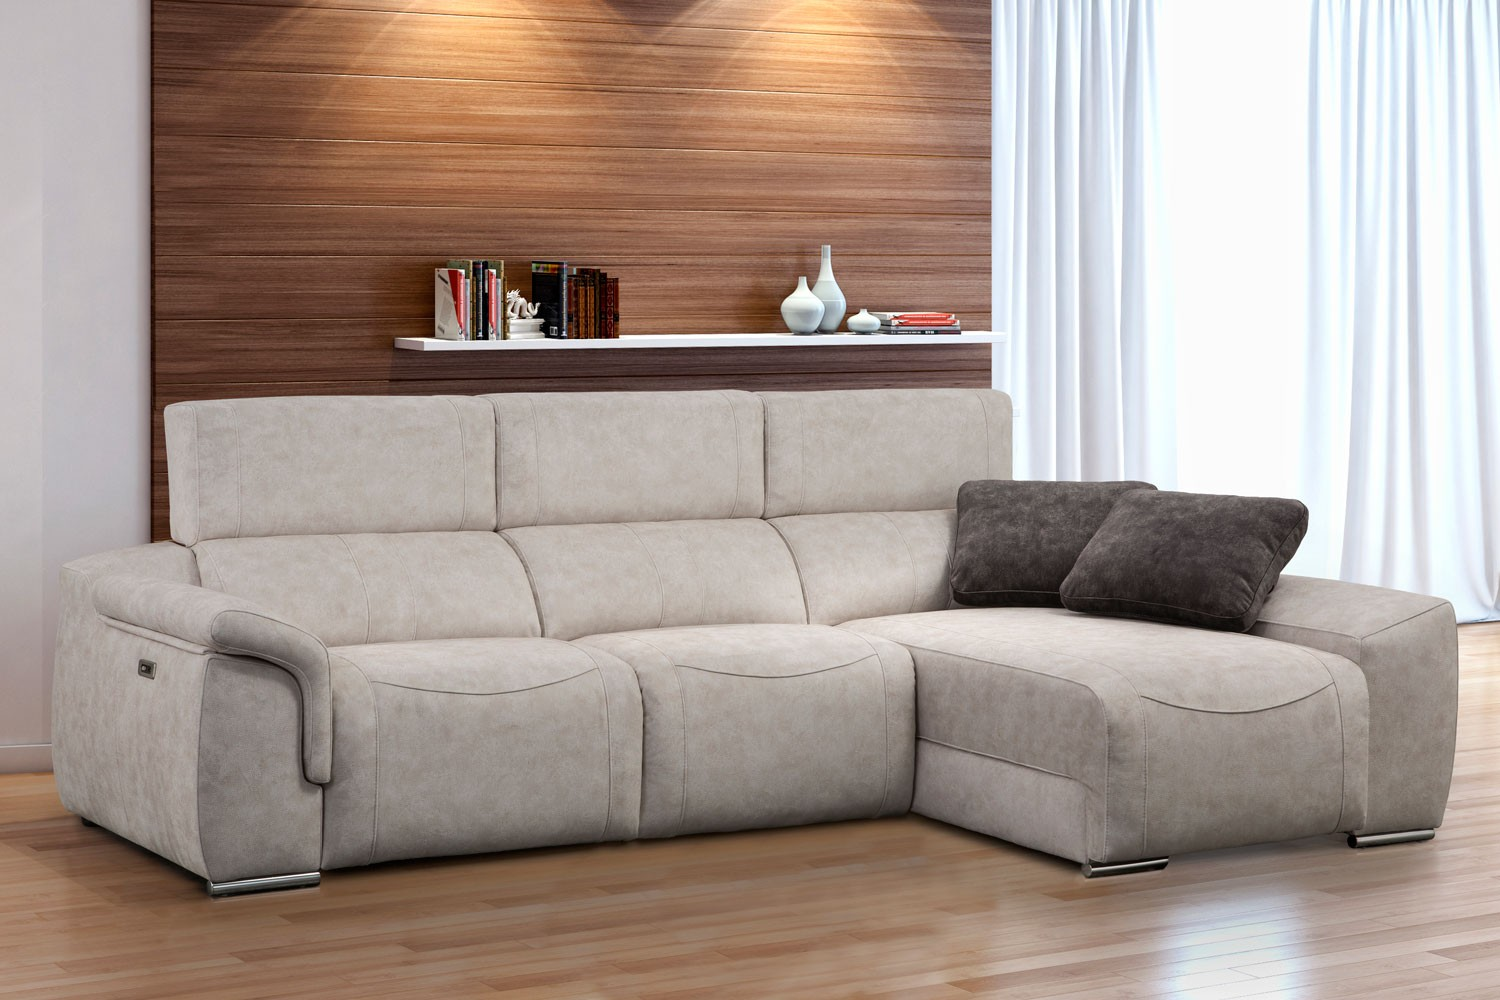 Sofa chaise longue black friday for Relax chaise longue